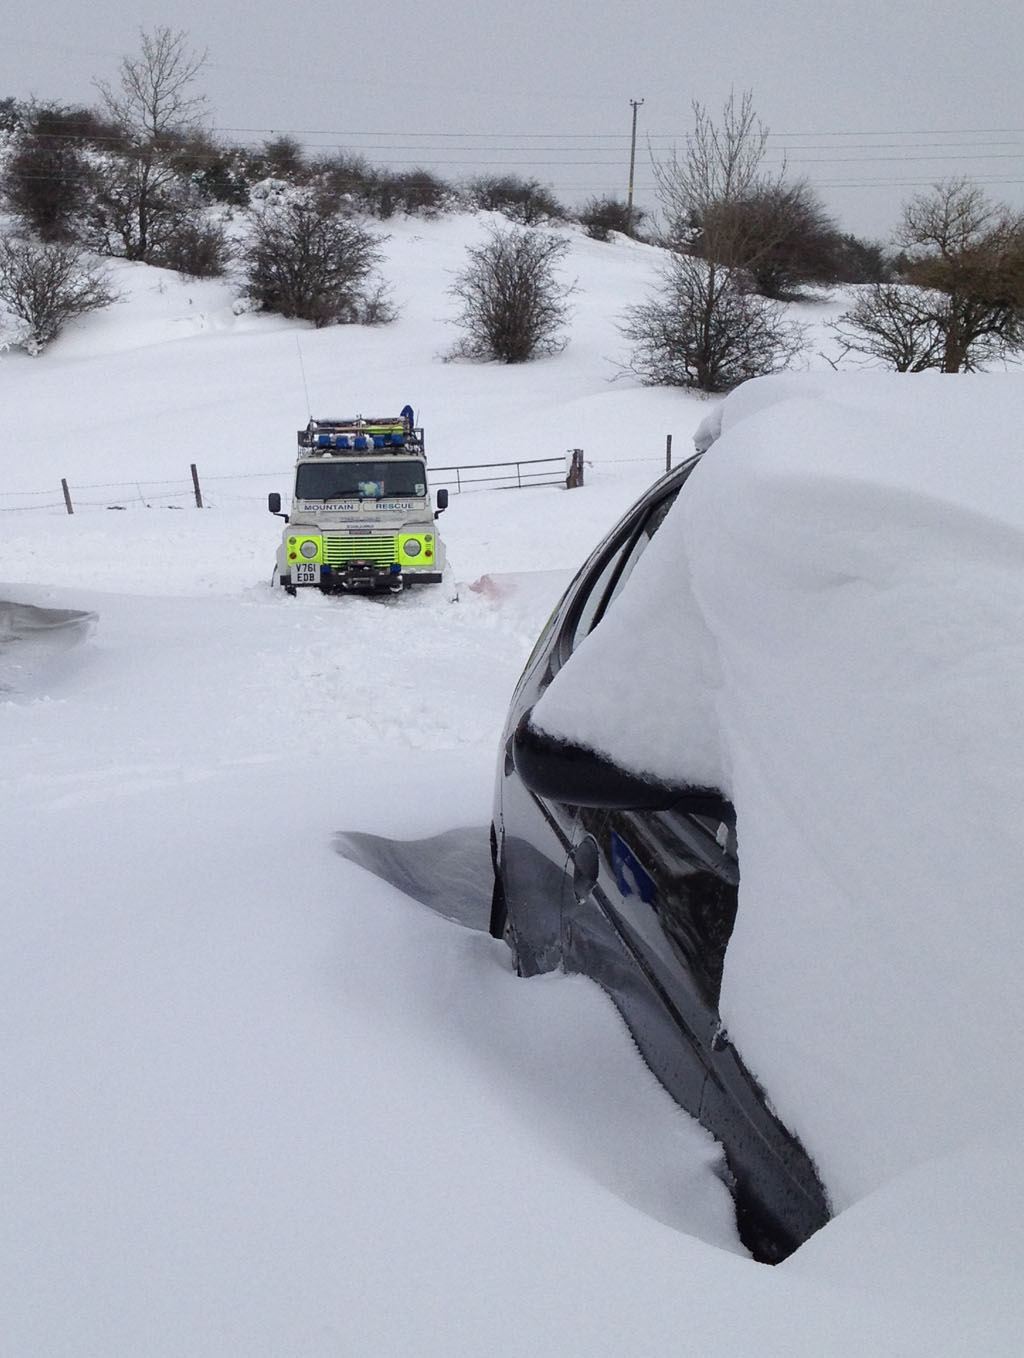 SAR Landrover in deep snow